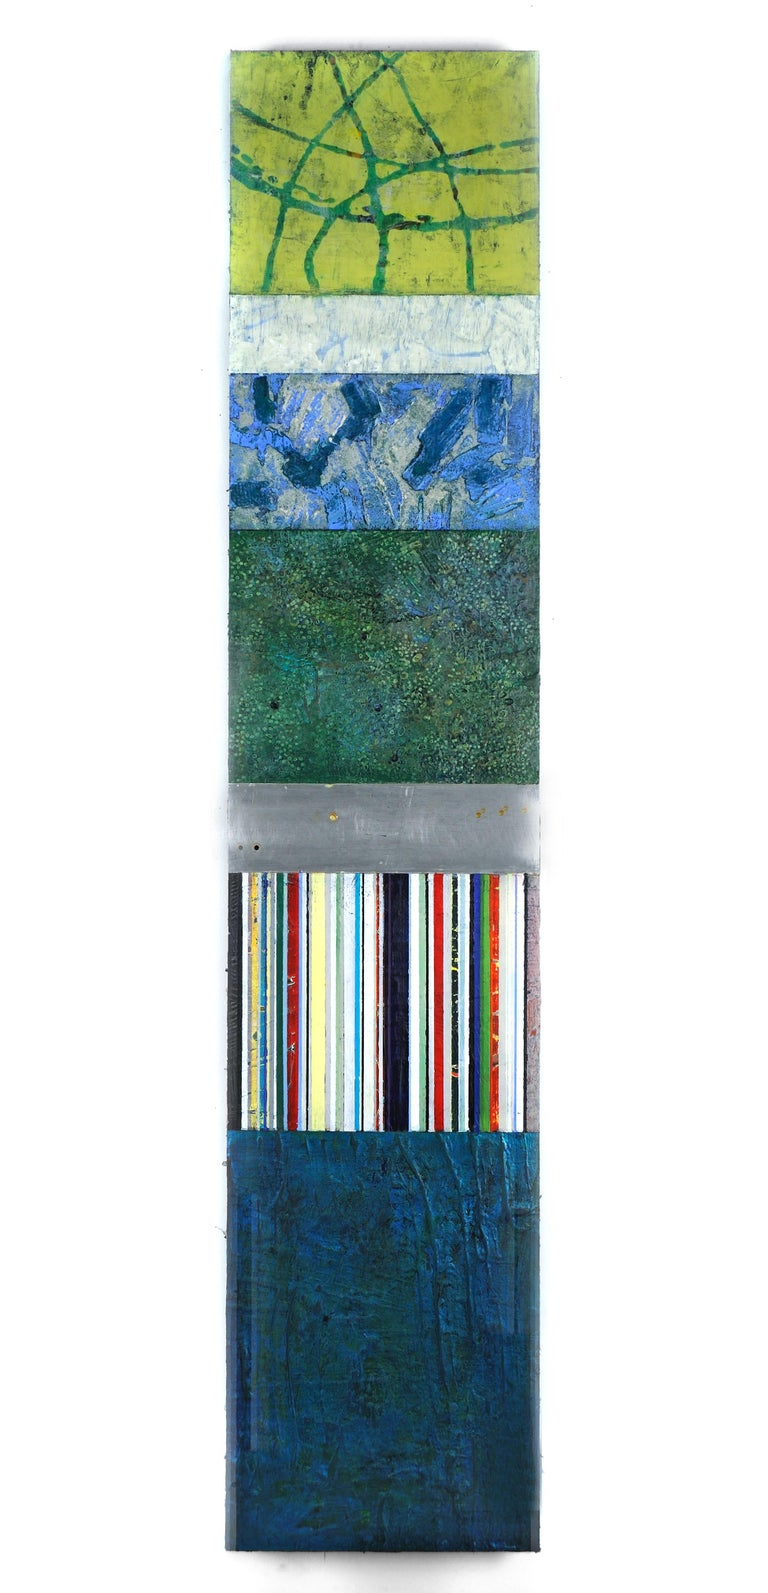 Strata 18-1, acrylic and wax on metal, 58 x 12 inches. Blue and green sectors - Mixed Media Art by Francie Hester